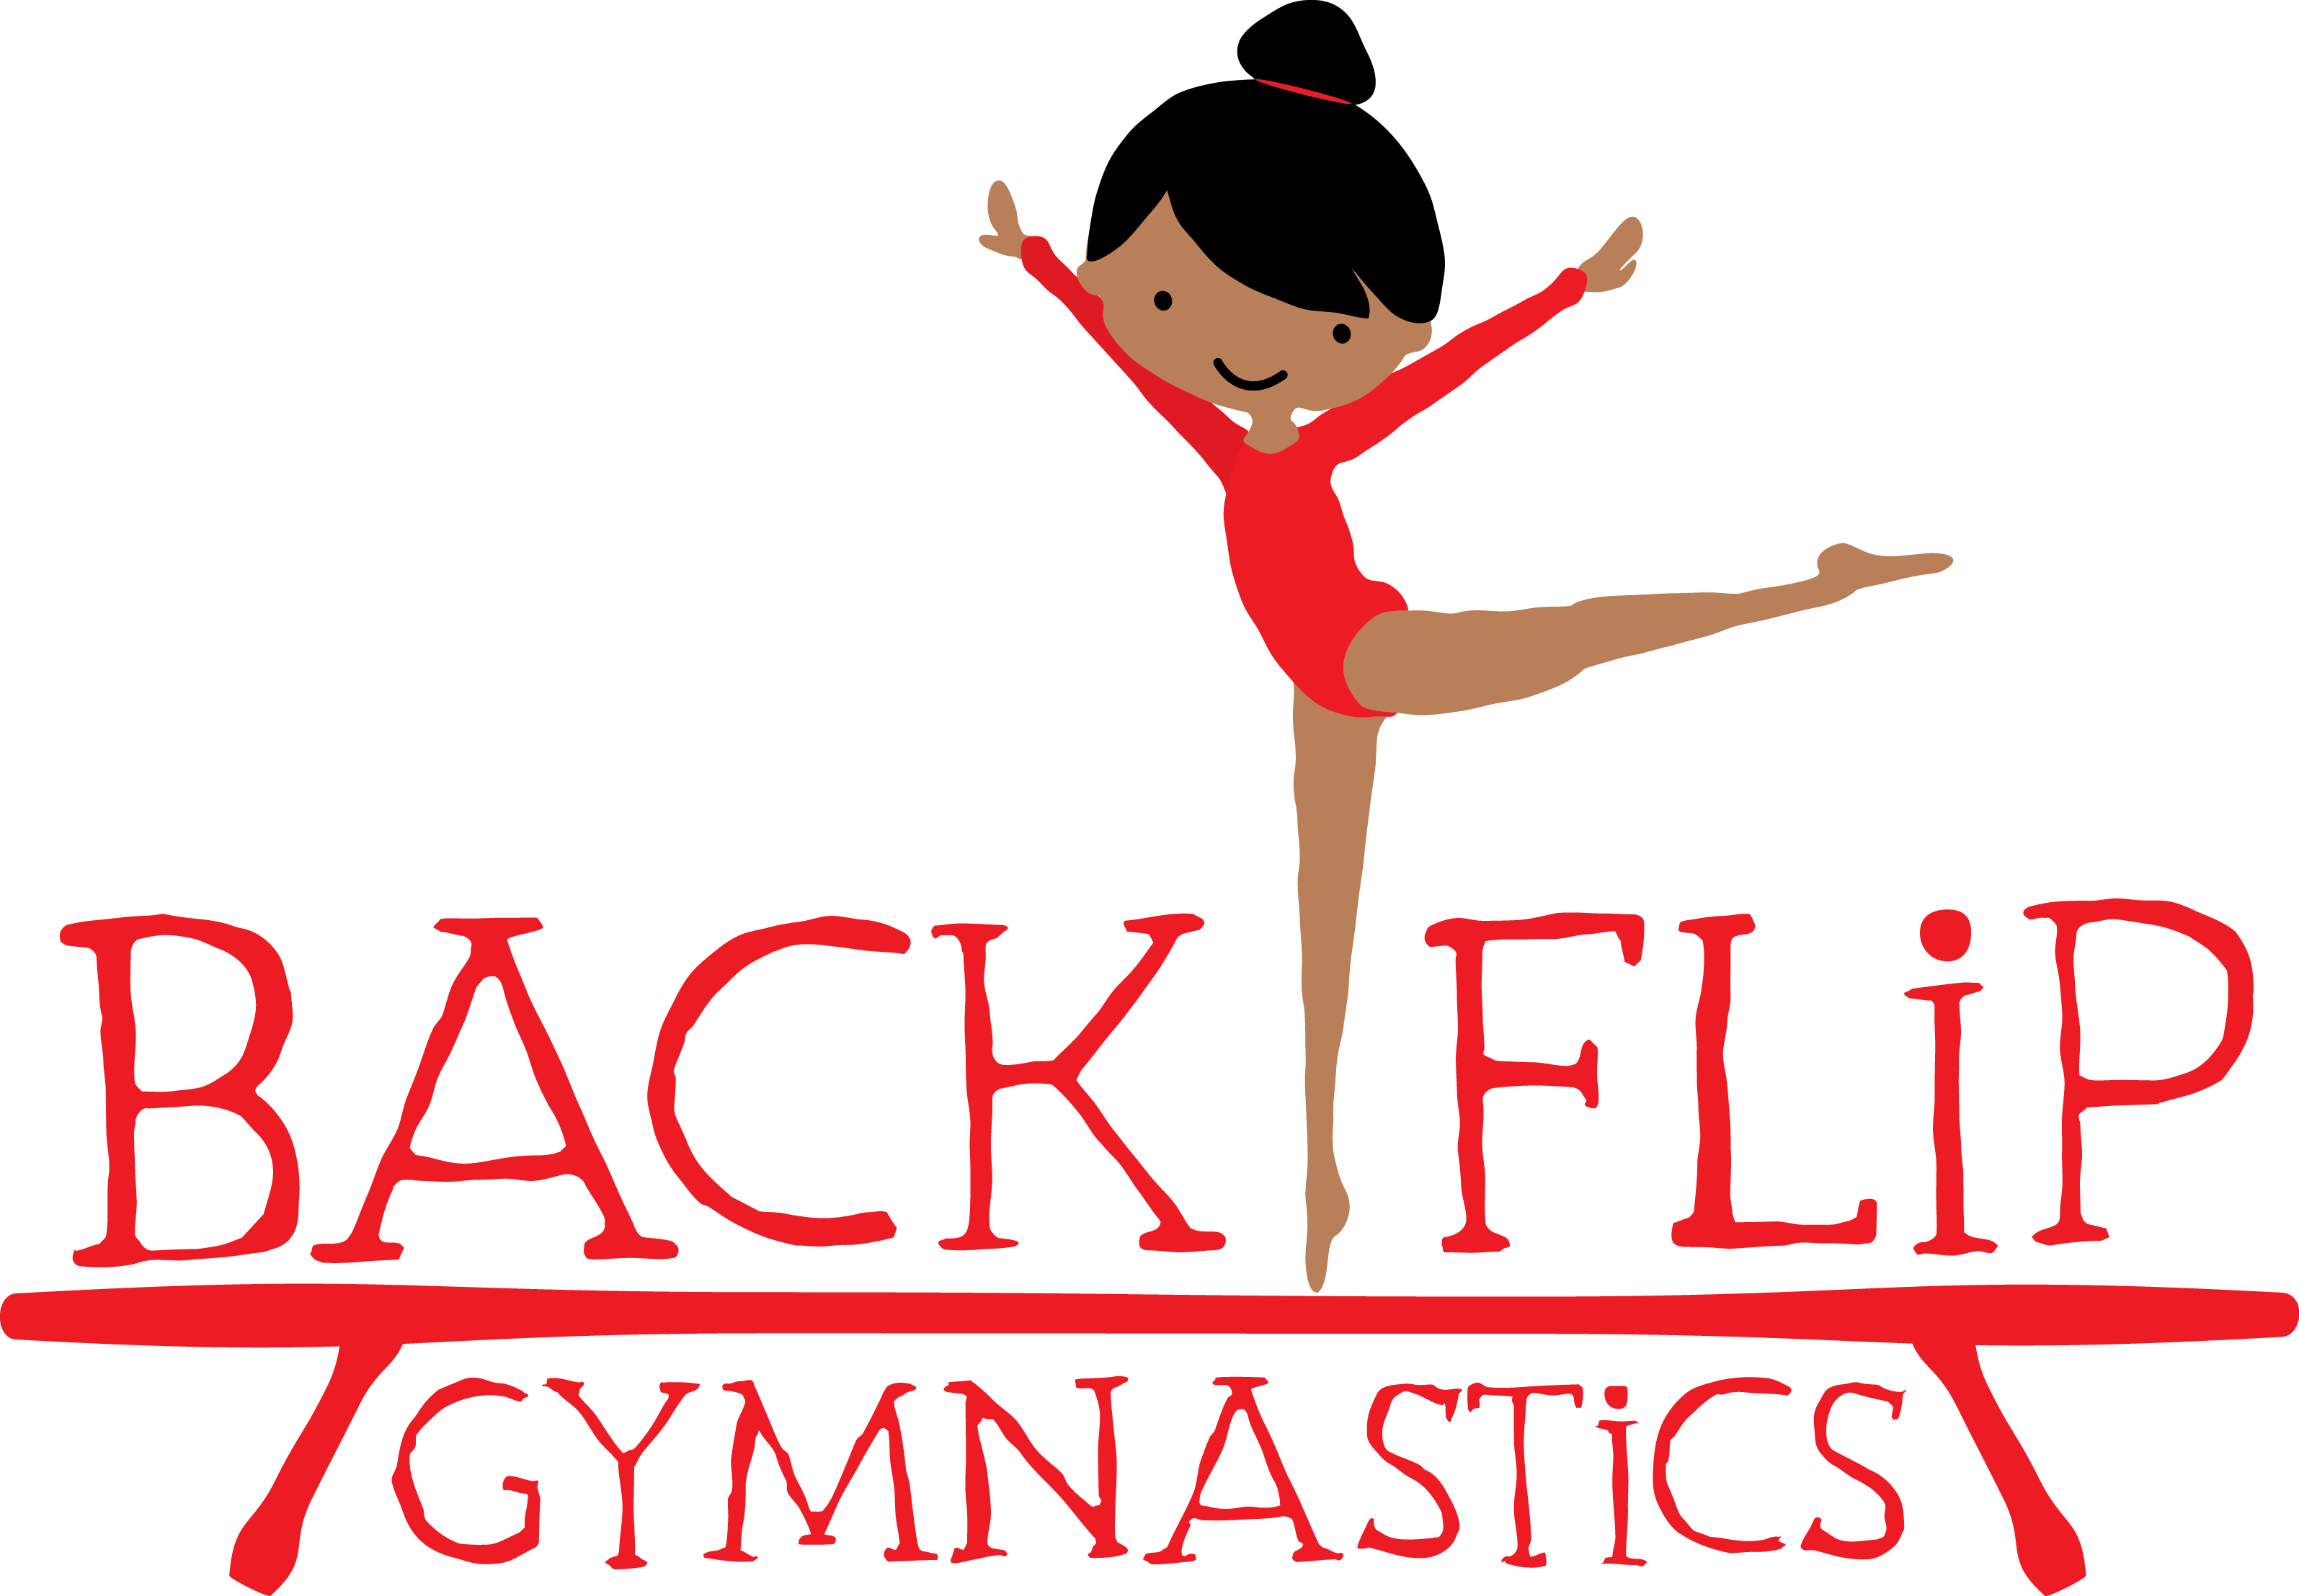 transparent library Home page backflip . Gymnastics clipart gymnastics party